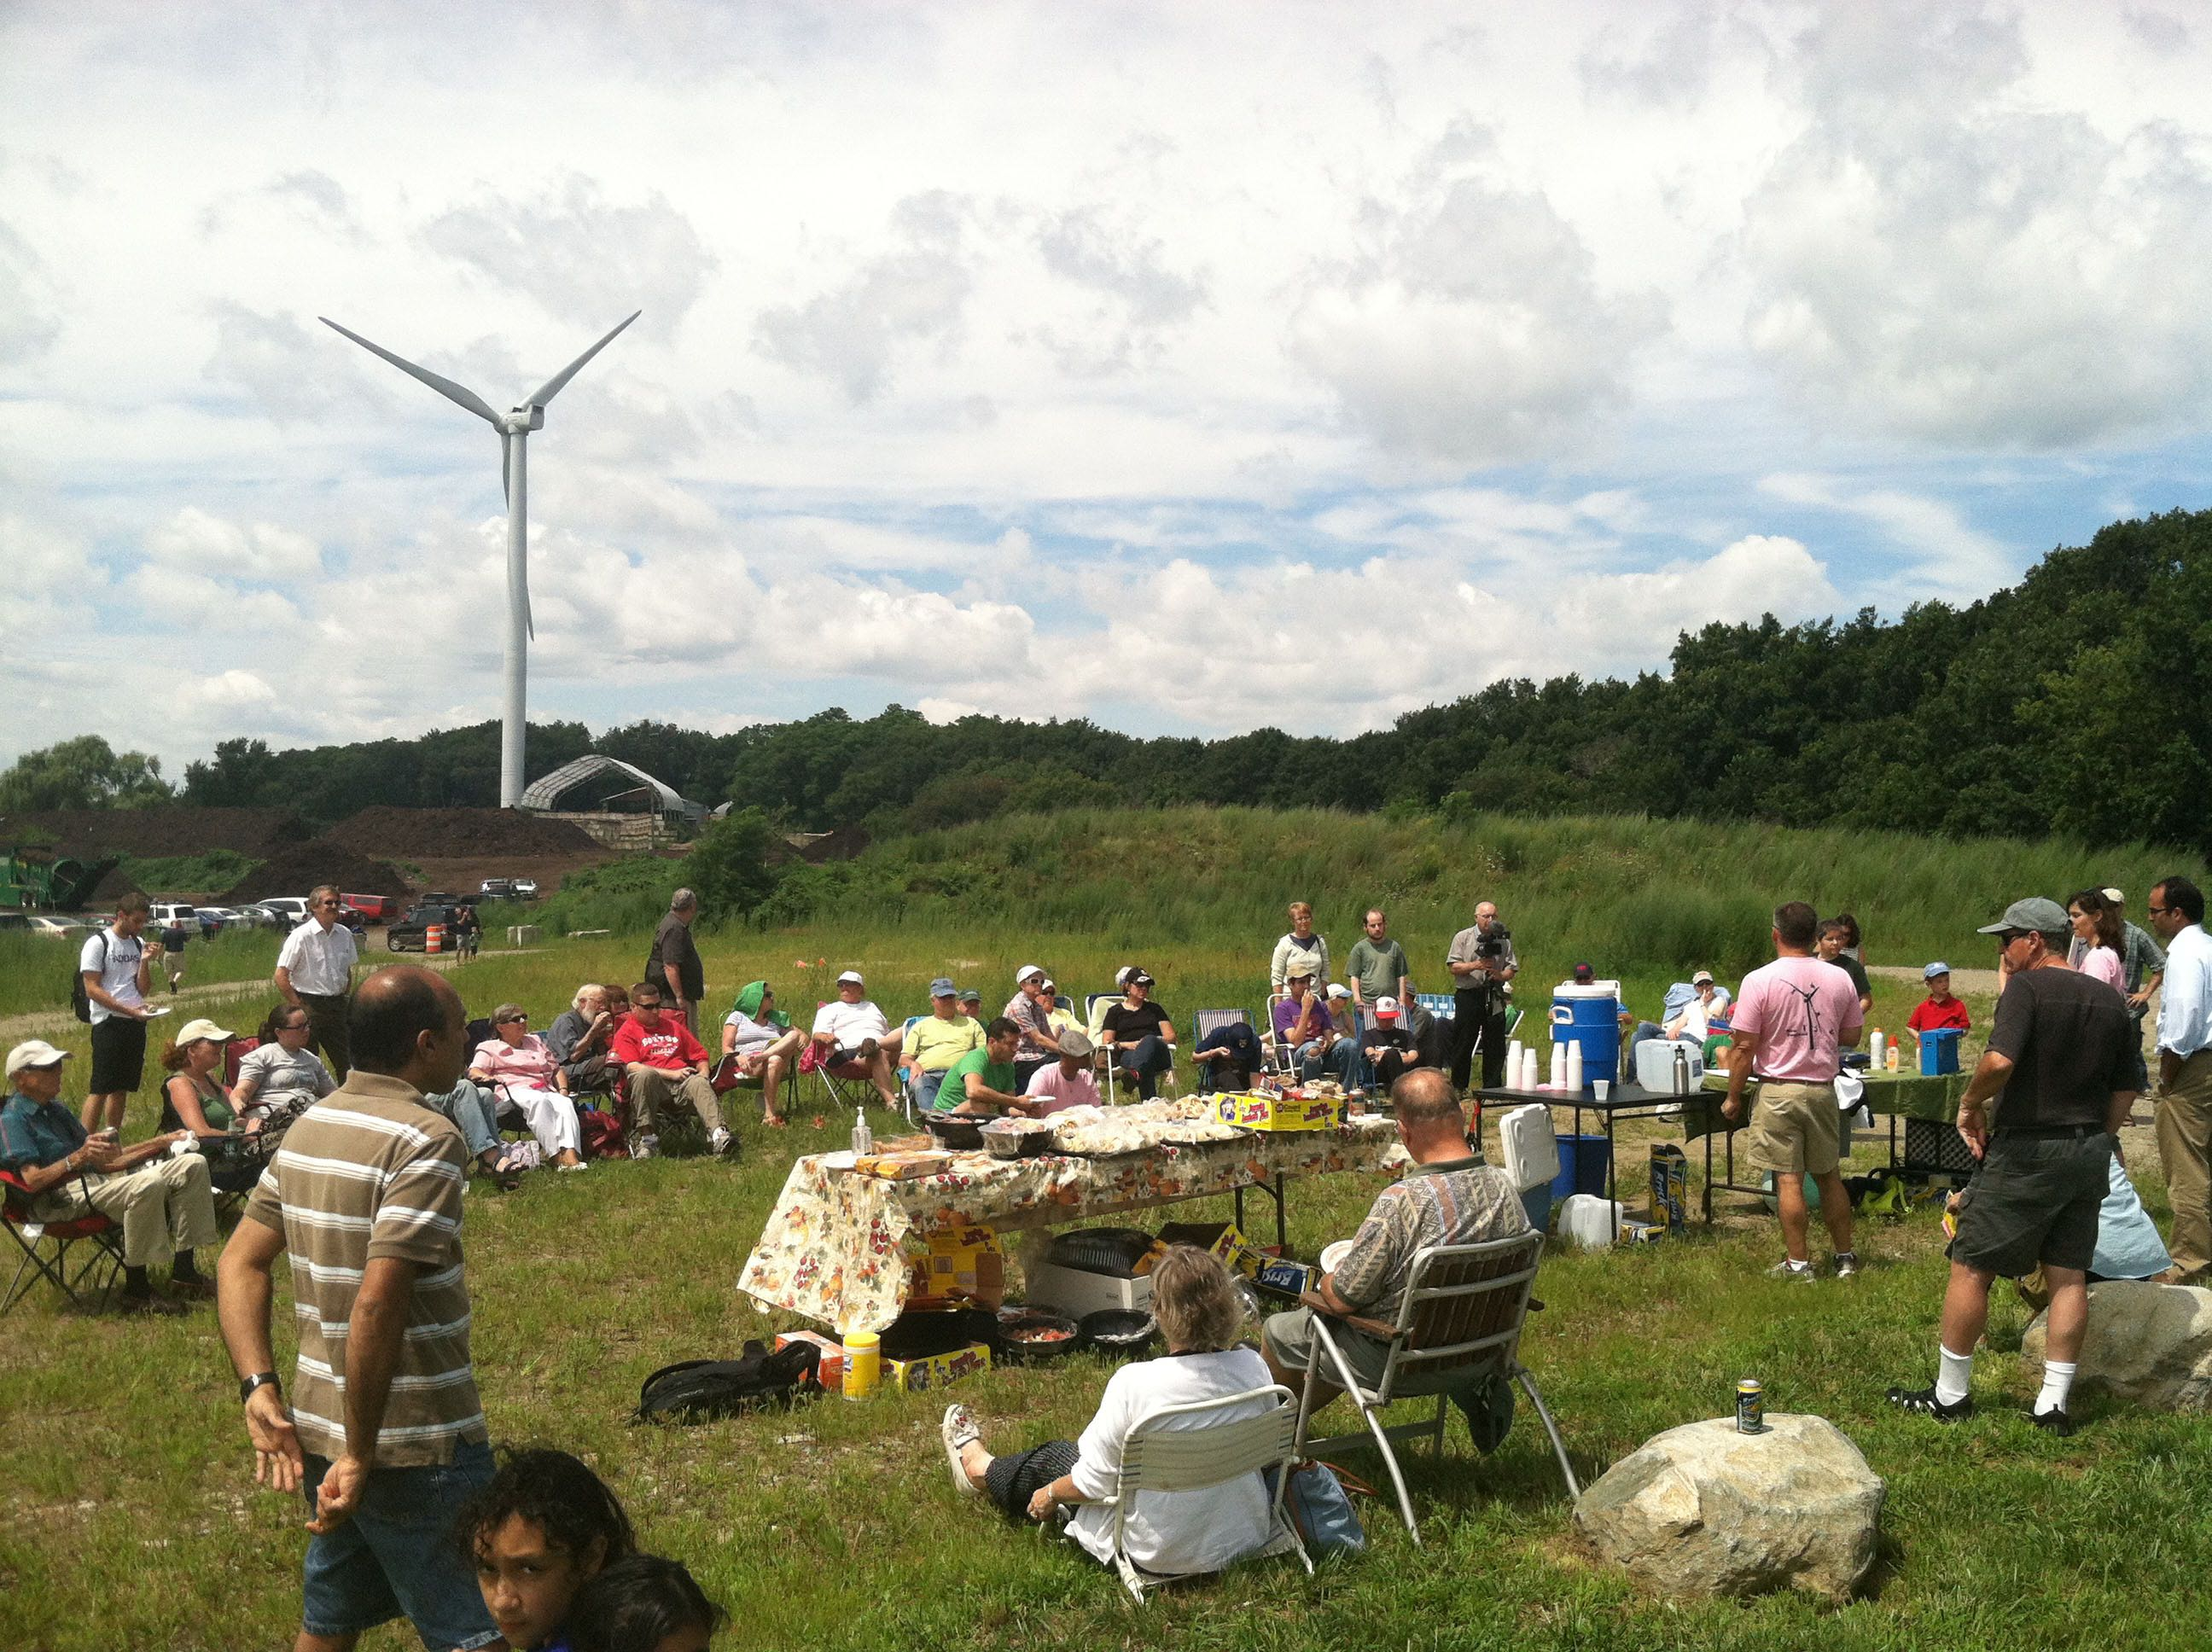 Picnic in front of a wind turbine in Ipswich, MA